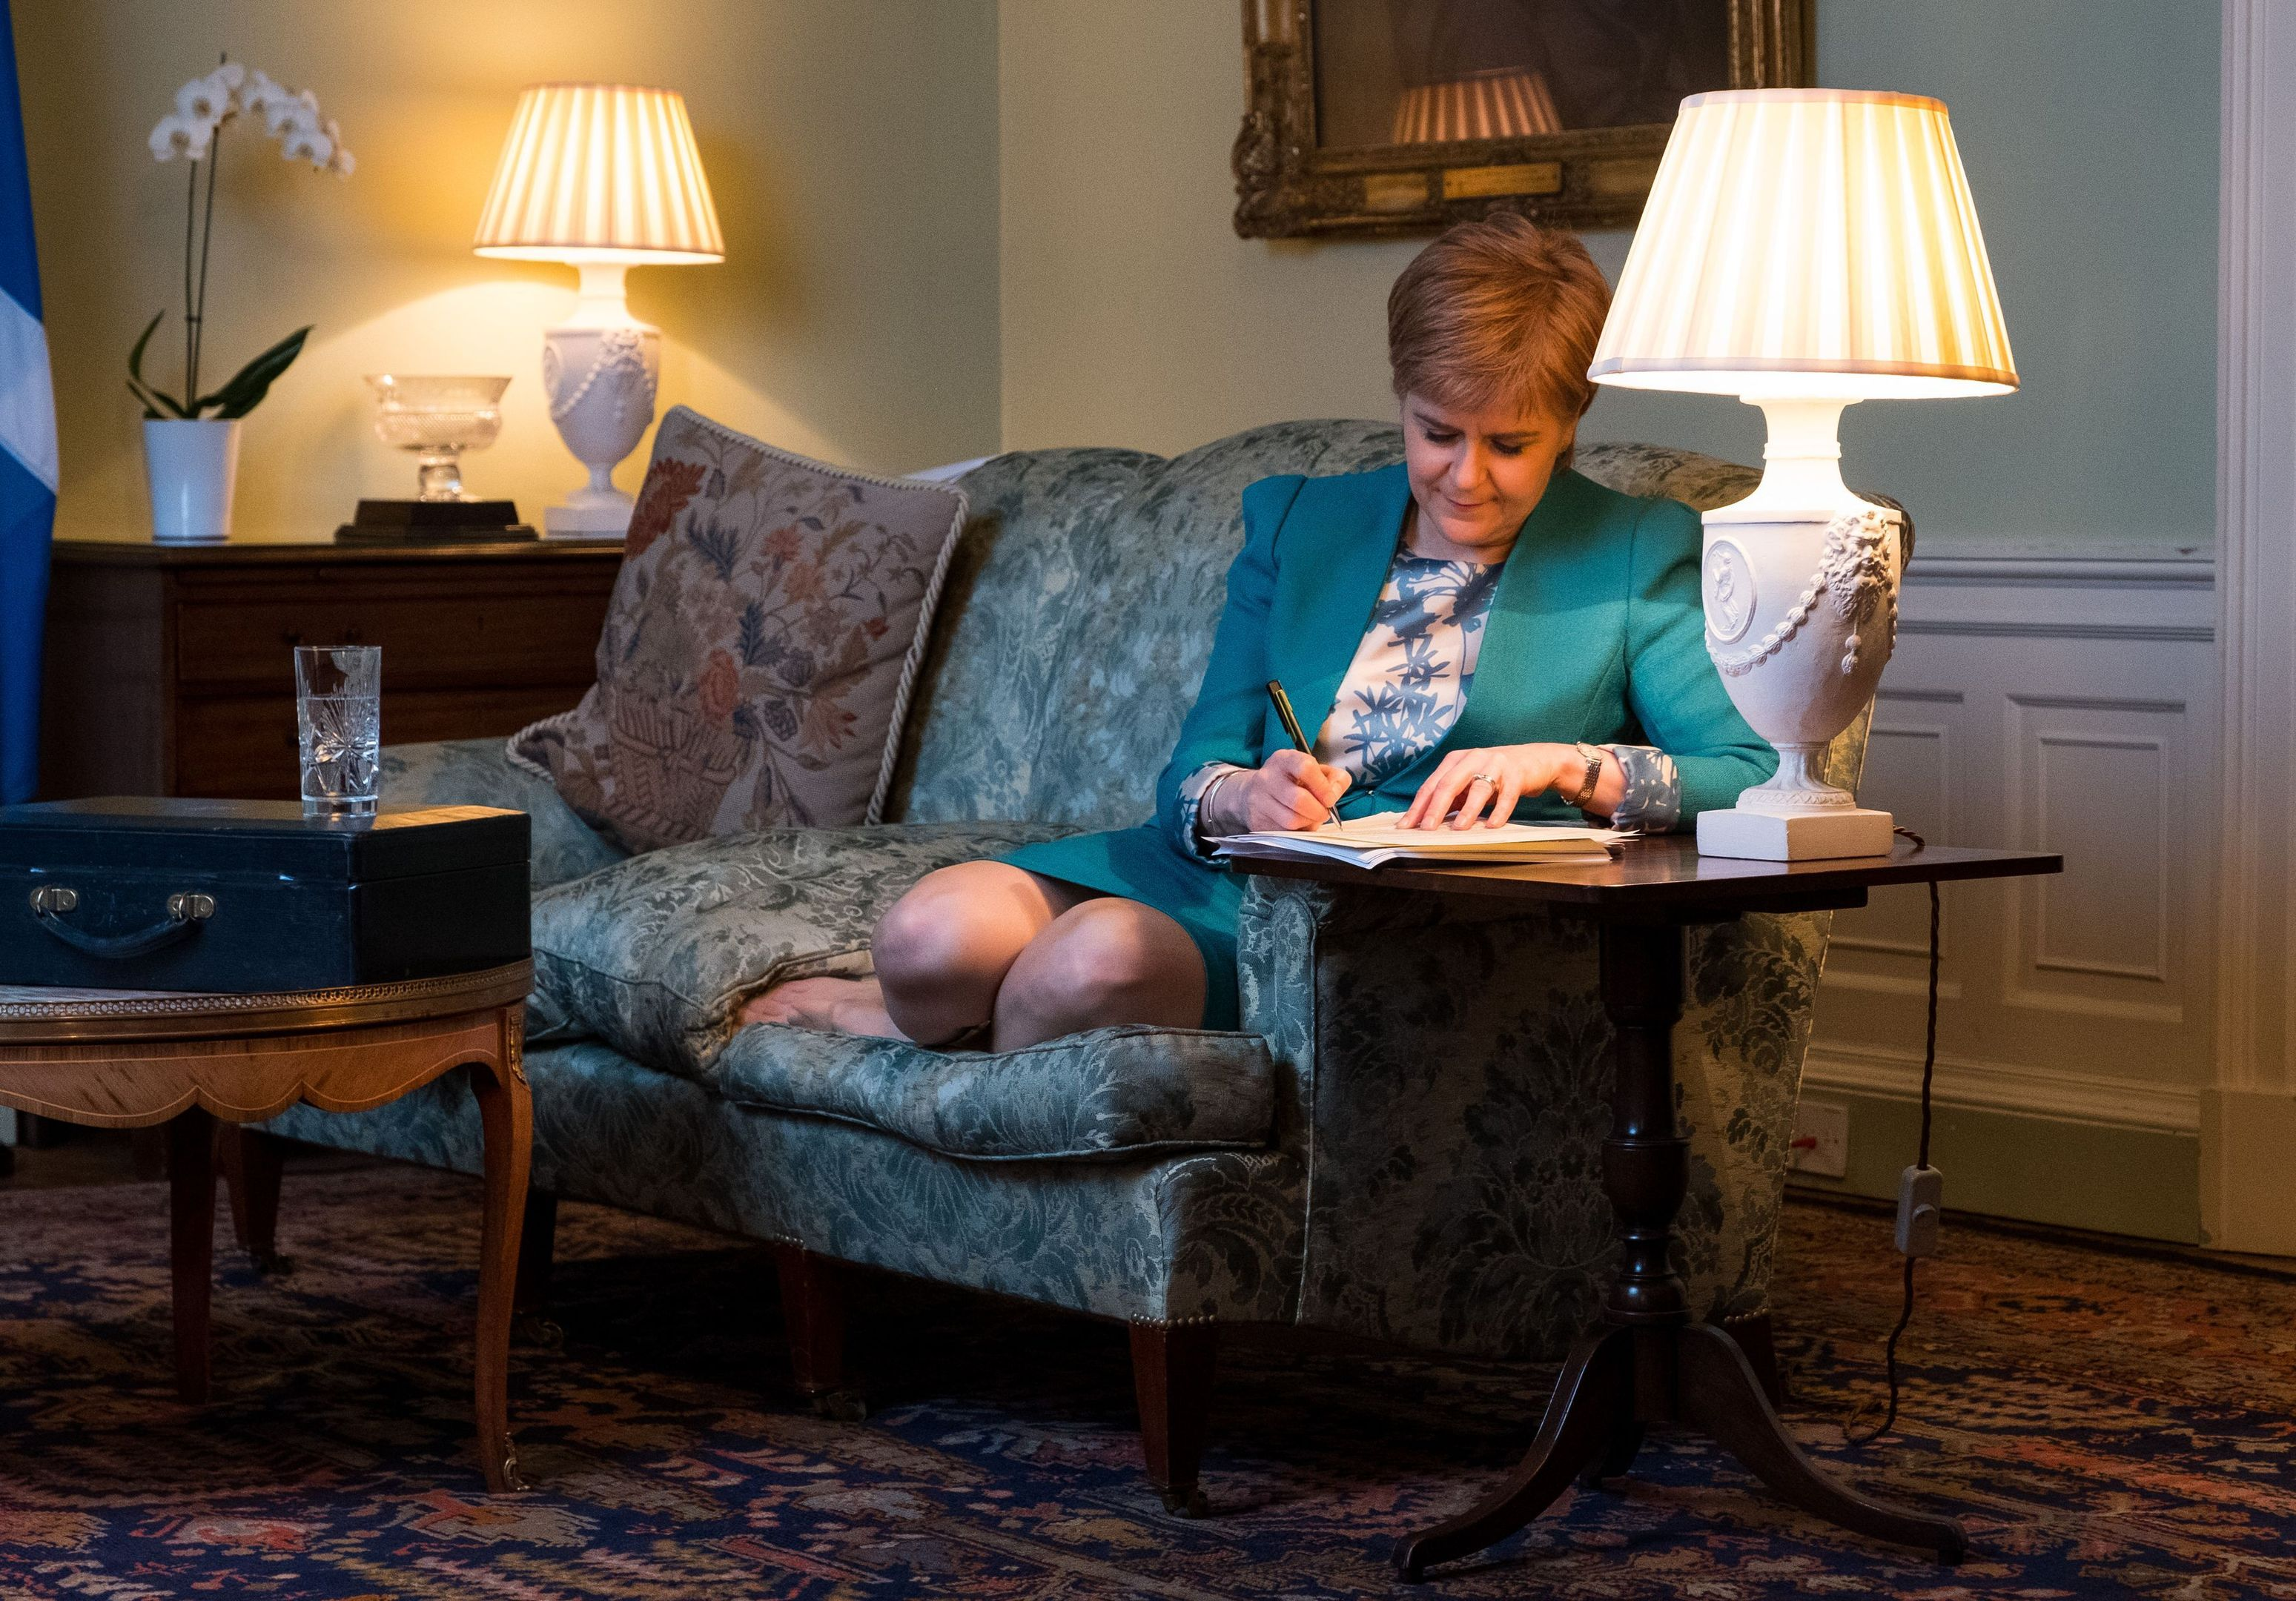 Nicola Sturgeon working on the final draft of her Section 30 letter (Scottish Government/PA Wire)